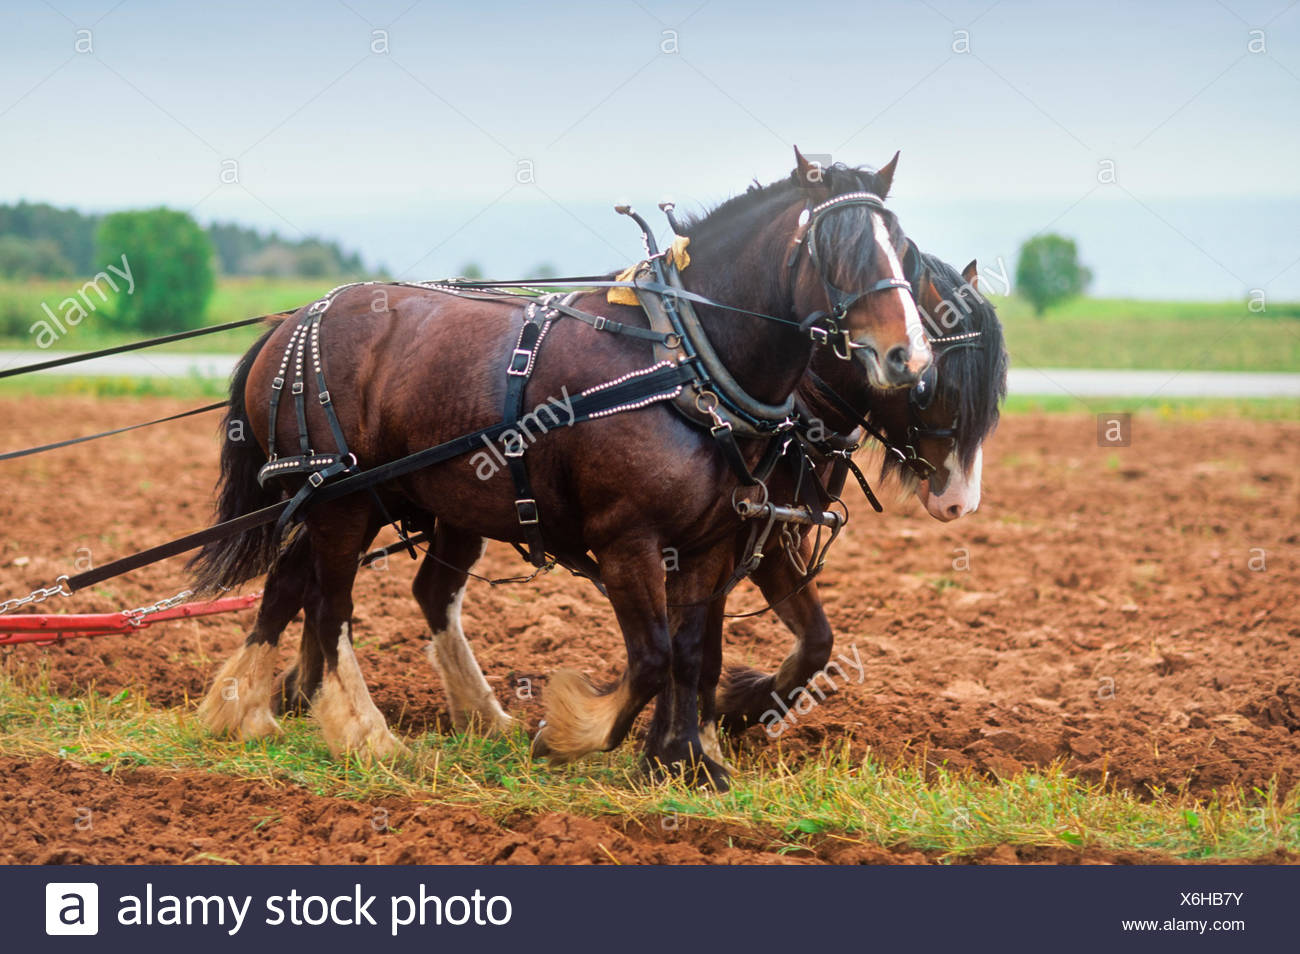 Clydesdale draft horses, Little Sands, Prince Edward Island, Canada - Stock Image